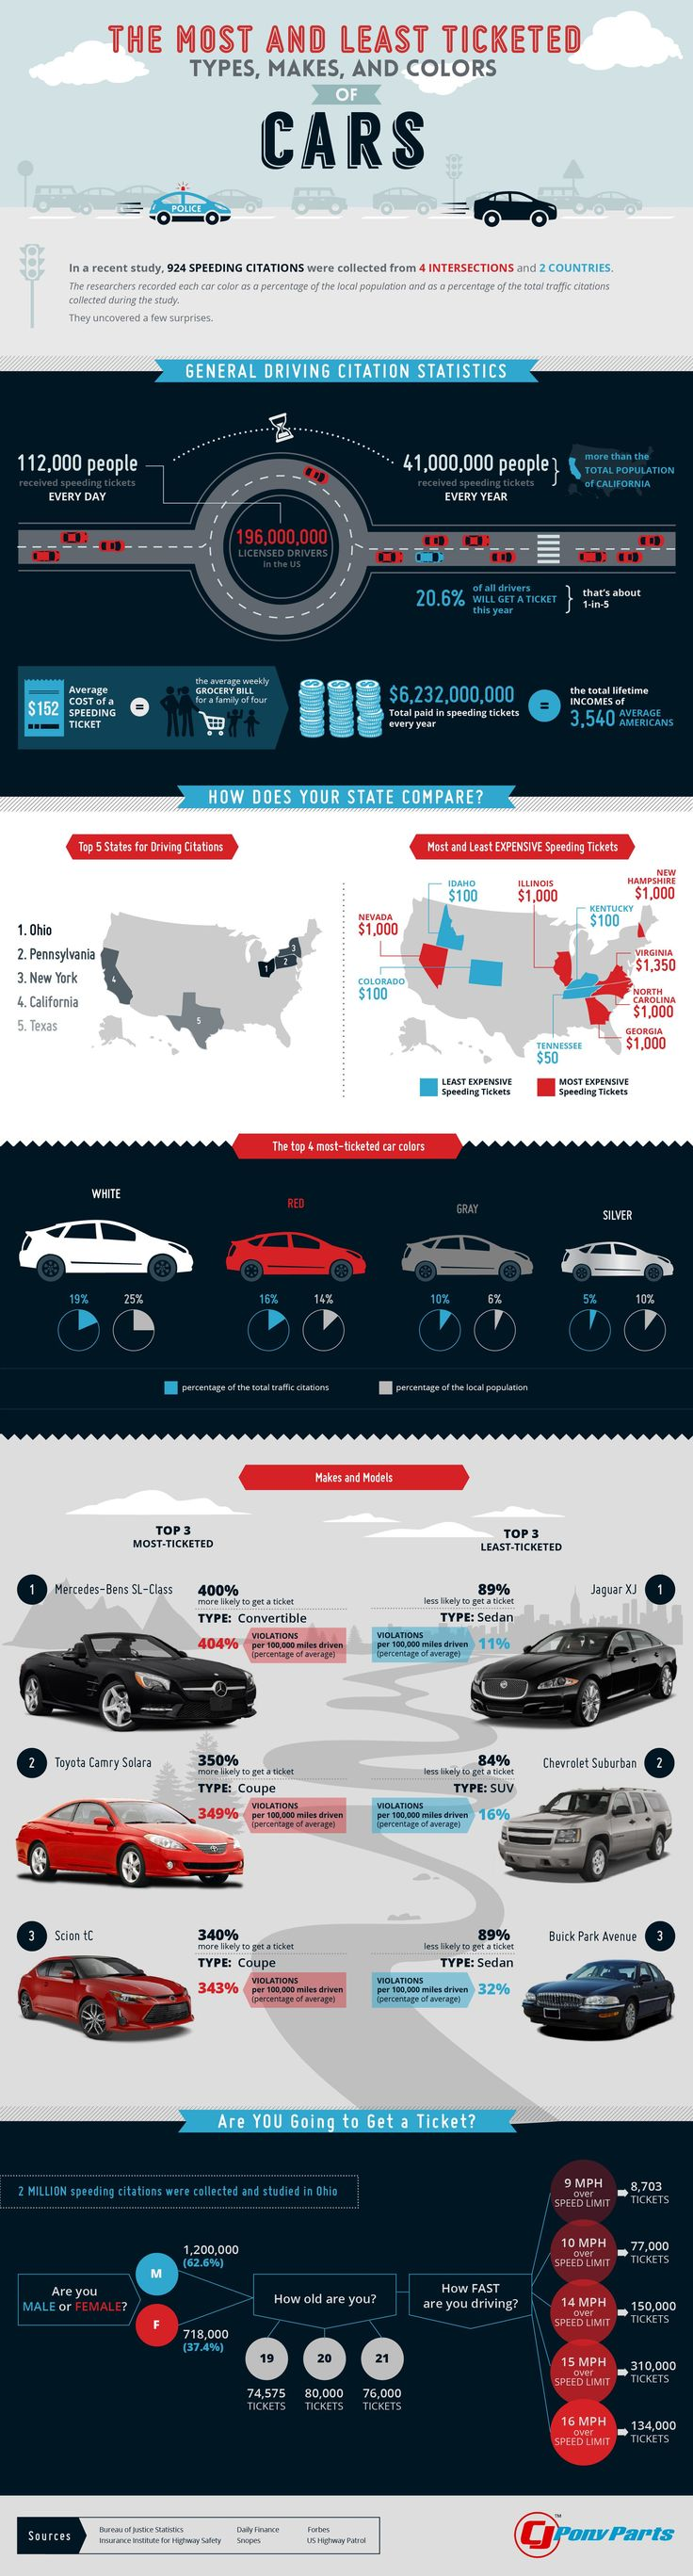 The Most and Least Ticketed Types, Makes, and Colors of Cars   #infographic #Cars #Colors